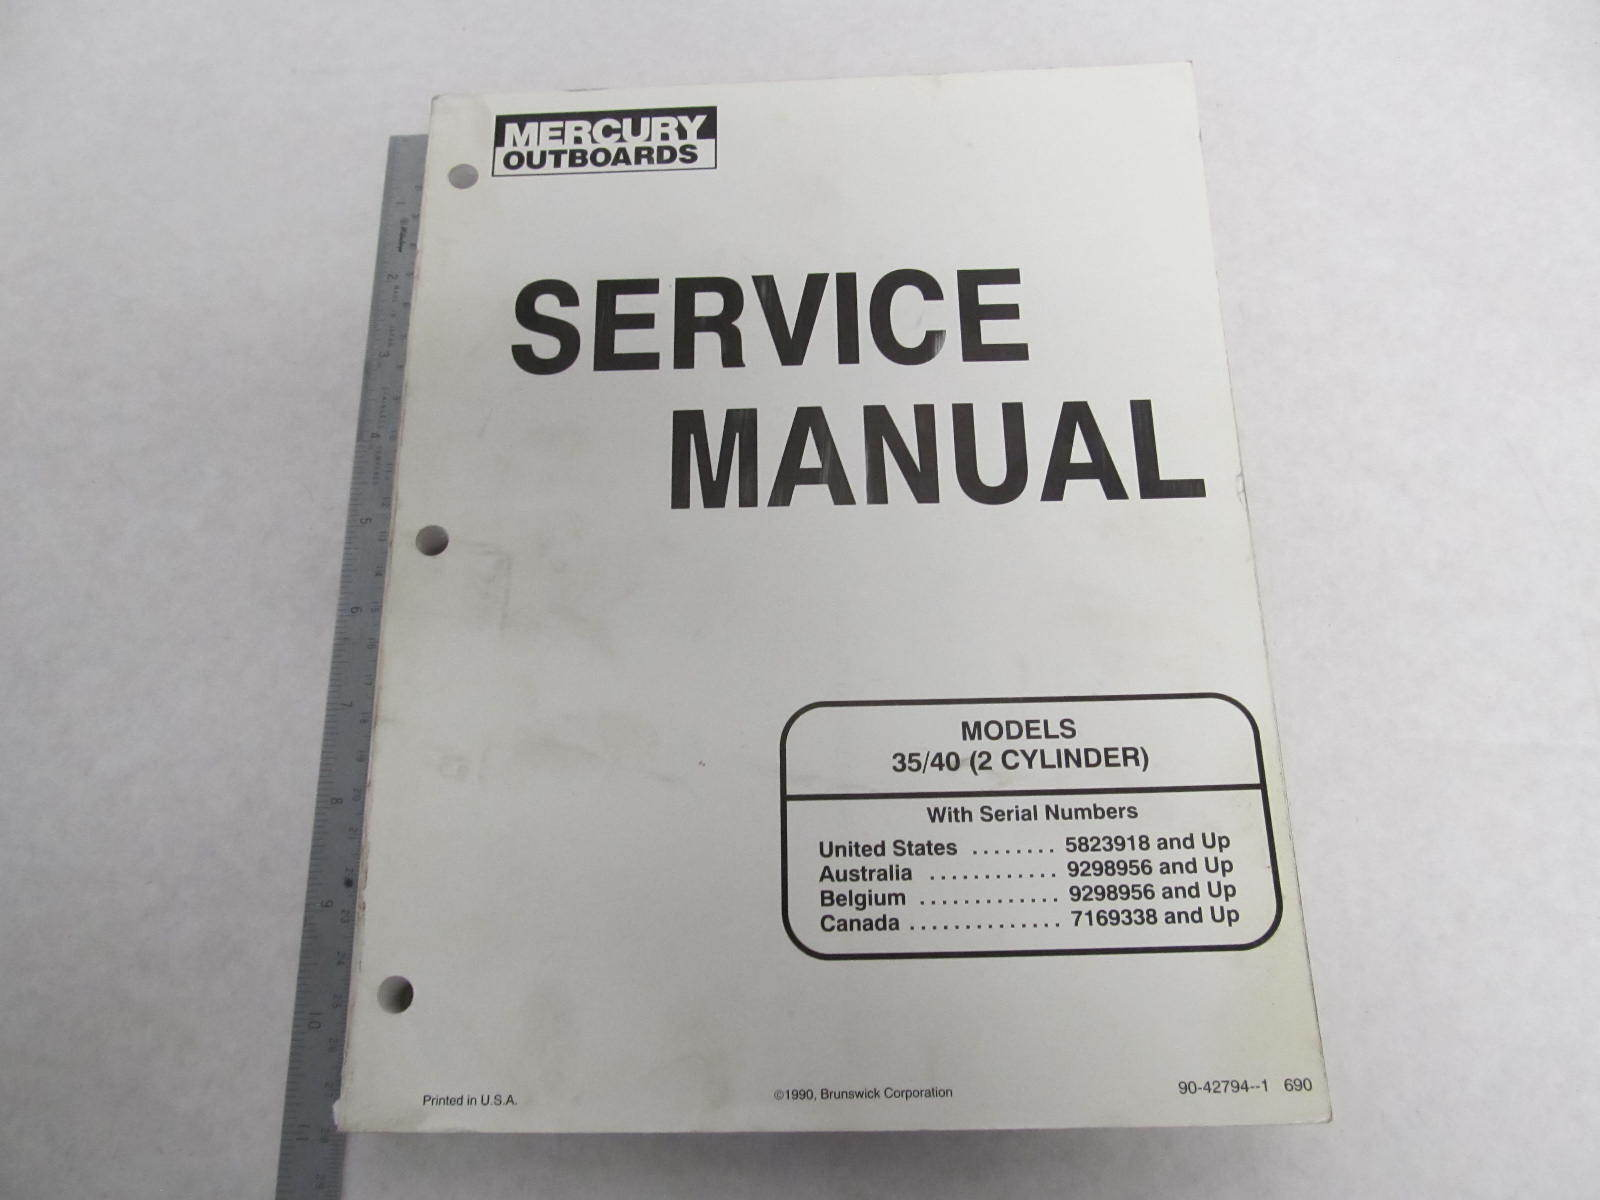 90 42794 1 690 mercury outboard service manual 35 40 hp 2 mercury 35 hp outboard service manual mercury 35 hp outboard service manual